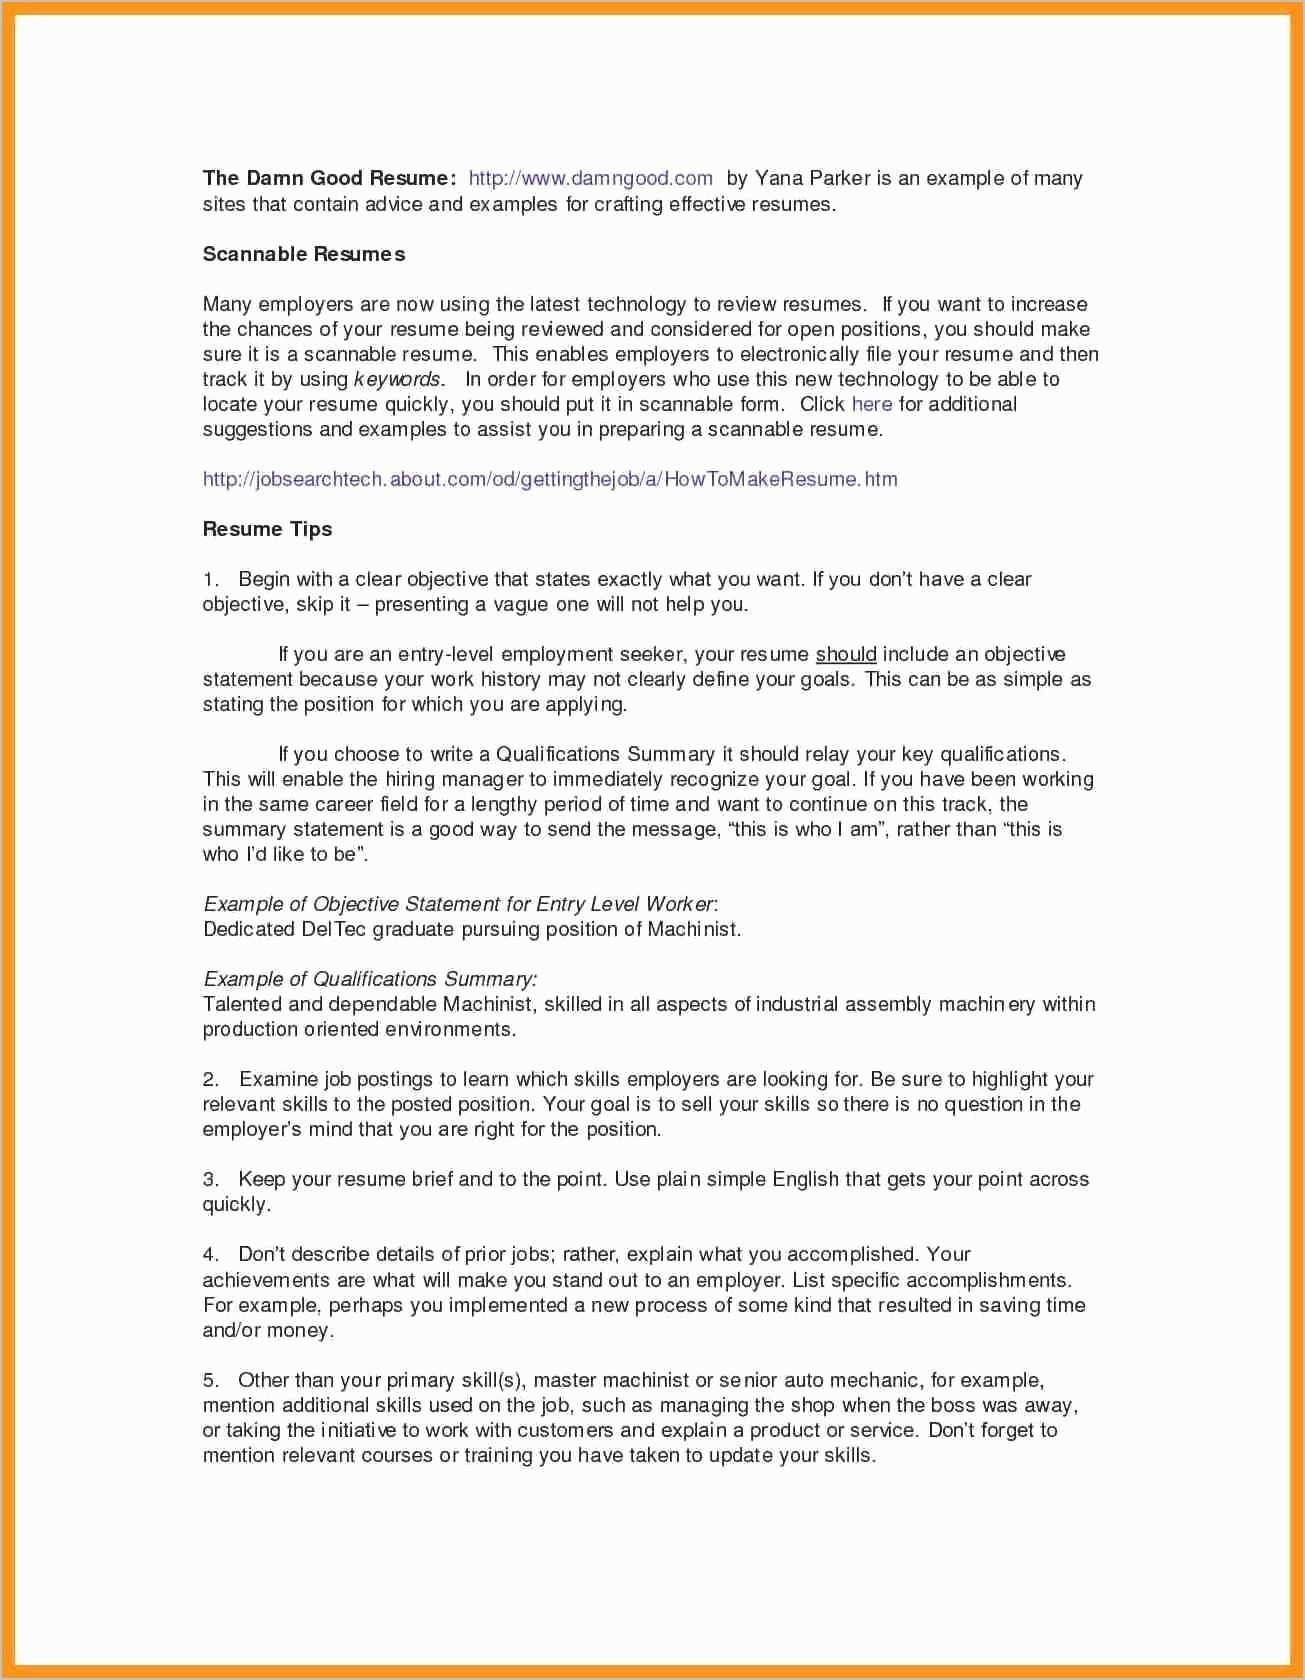 resume professional writers reviews example-Resume Professional Writers Reviews 10-c